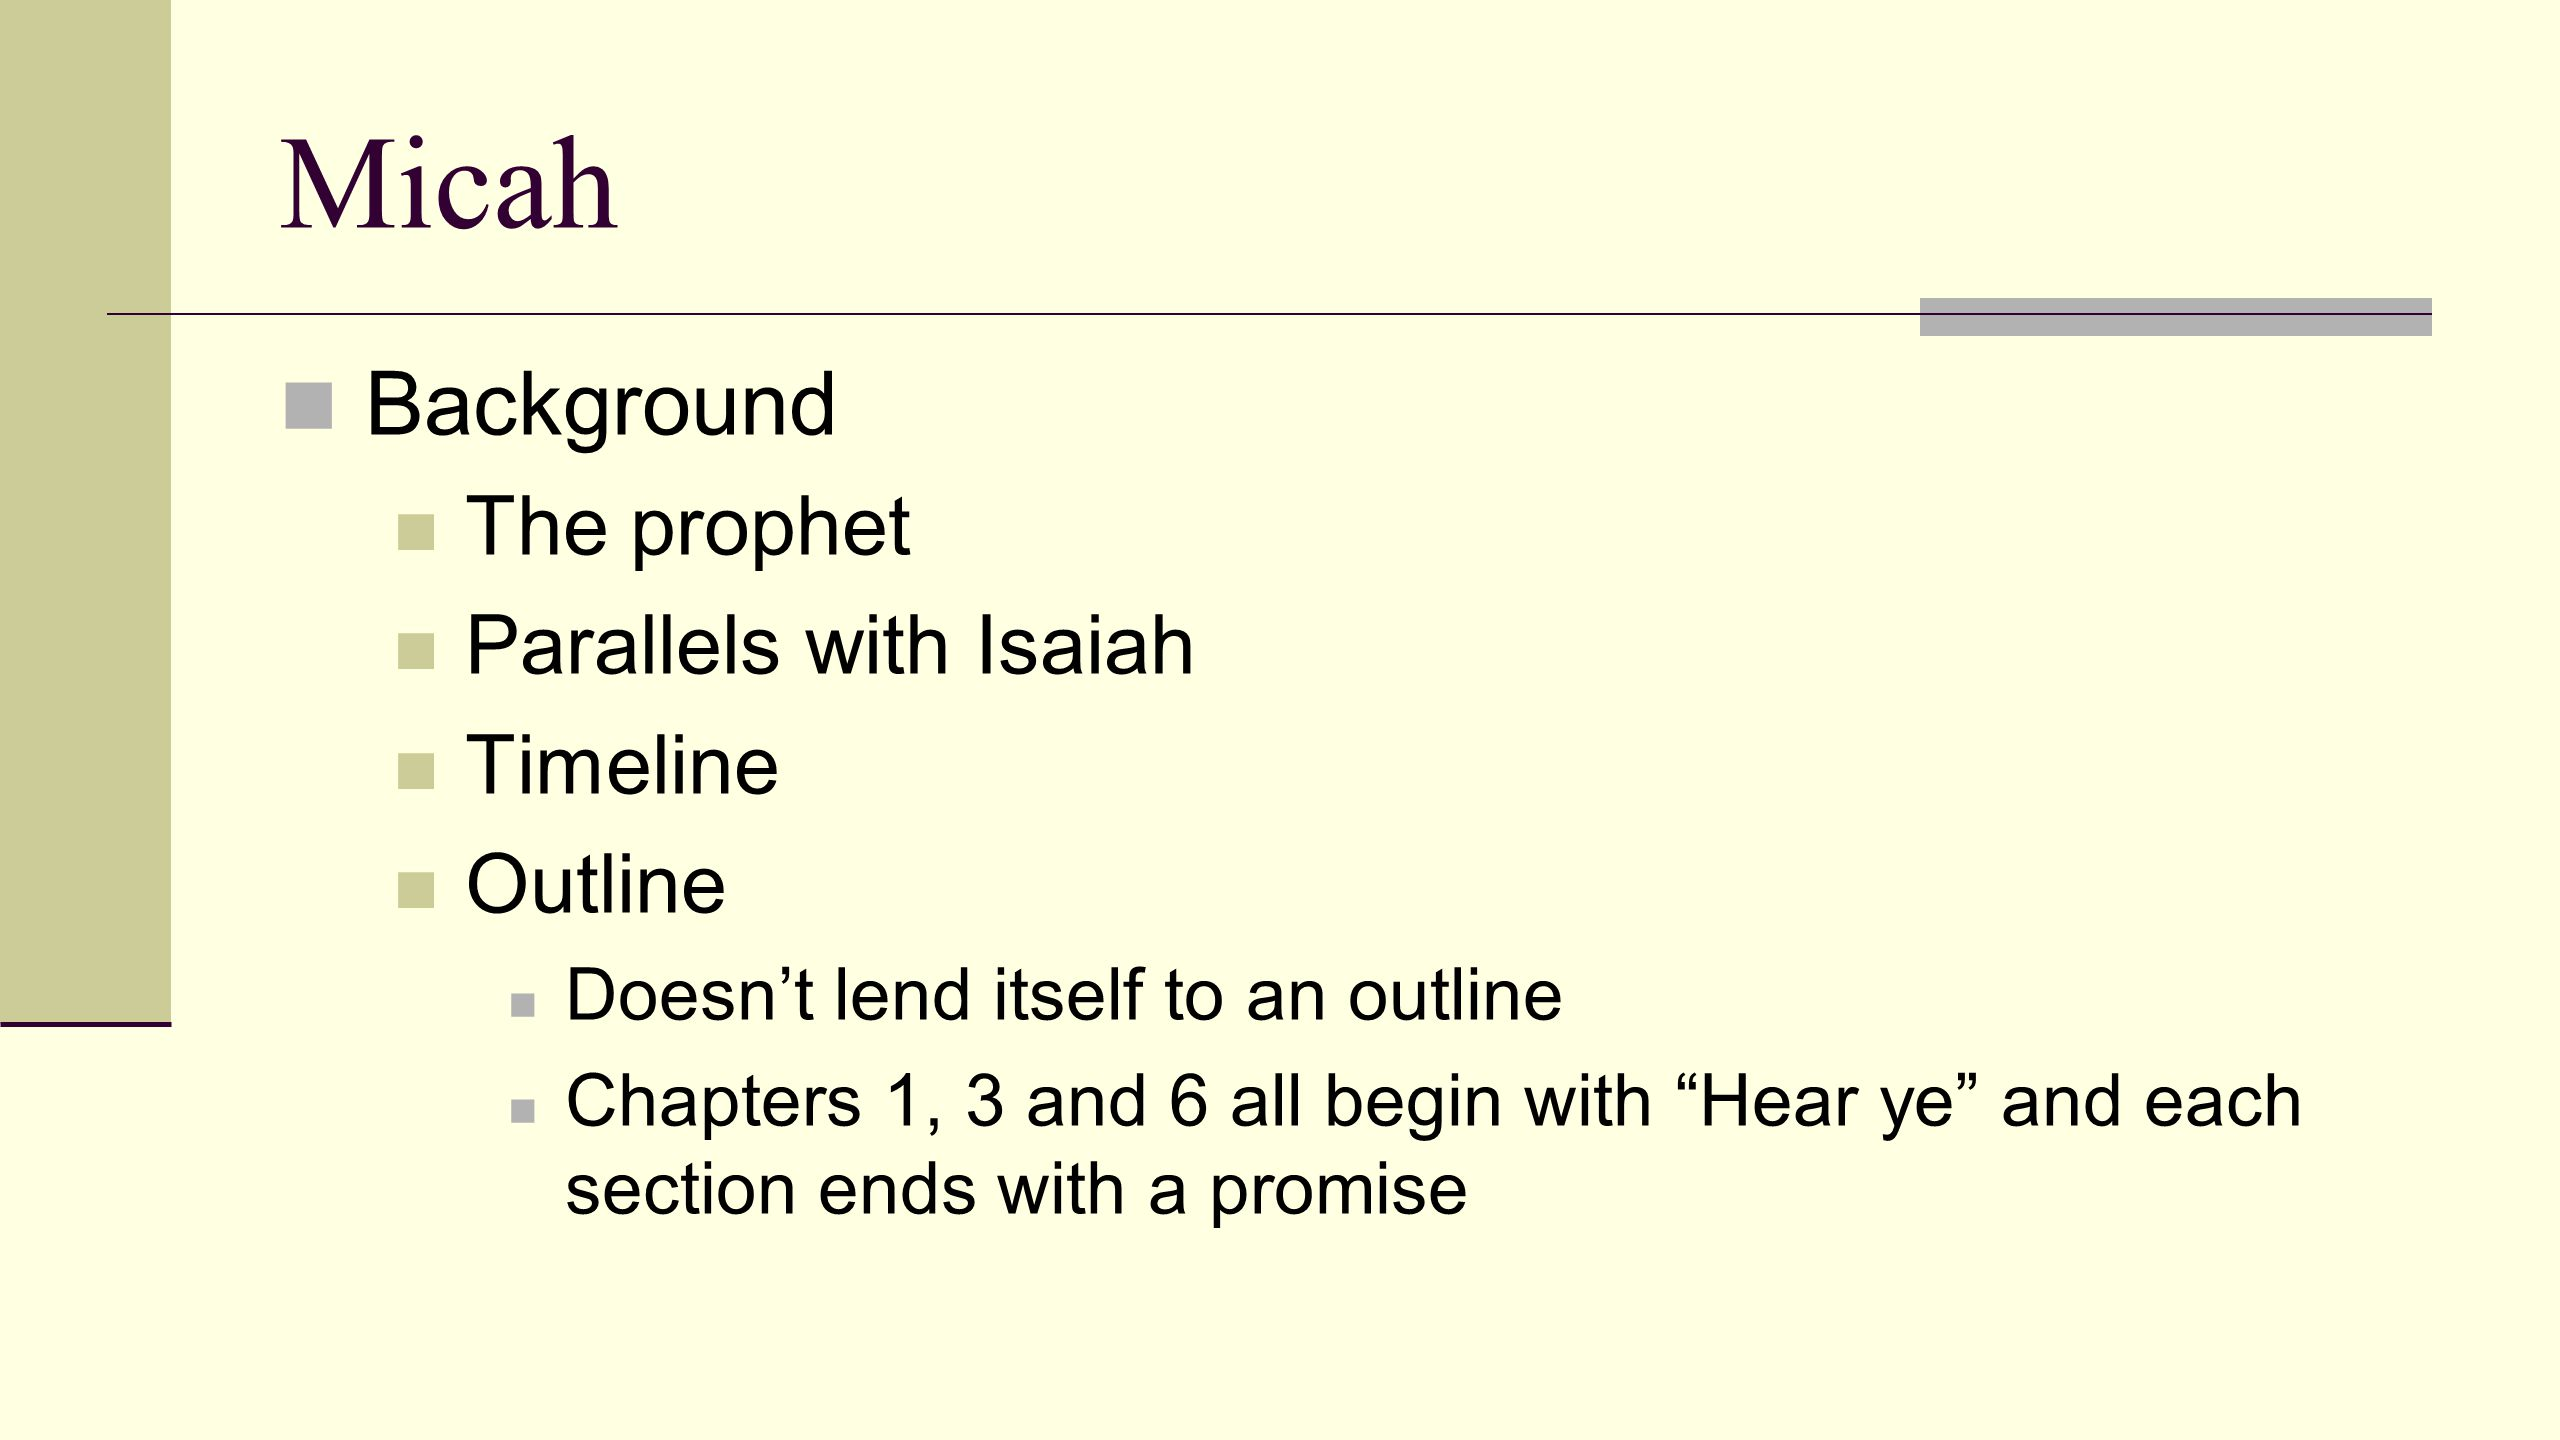 Micah Background The prophet Parallels with Isaiah Timeline Outline Doesn't lend itself to an outline Chapters 1, 3 and 6 all begin with Hear ye and each section ends with a promise